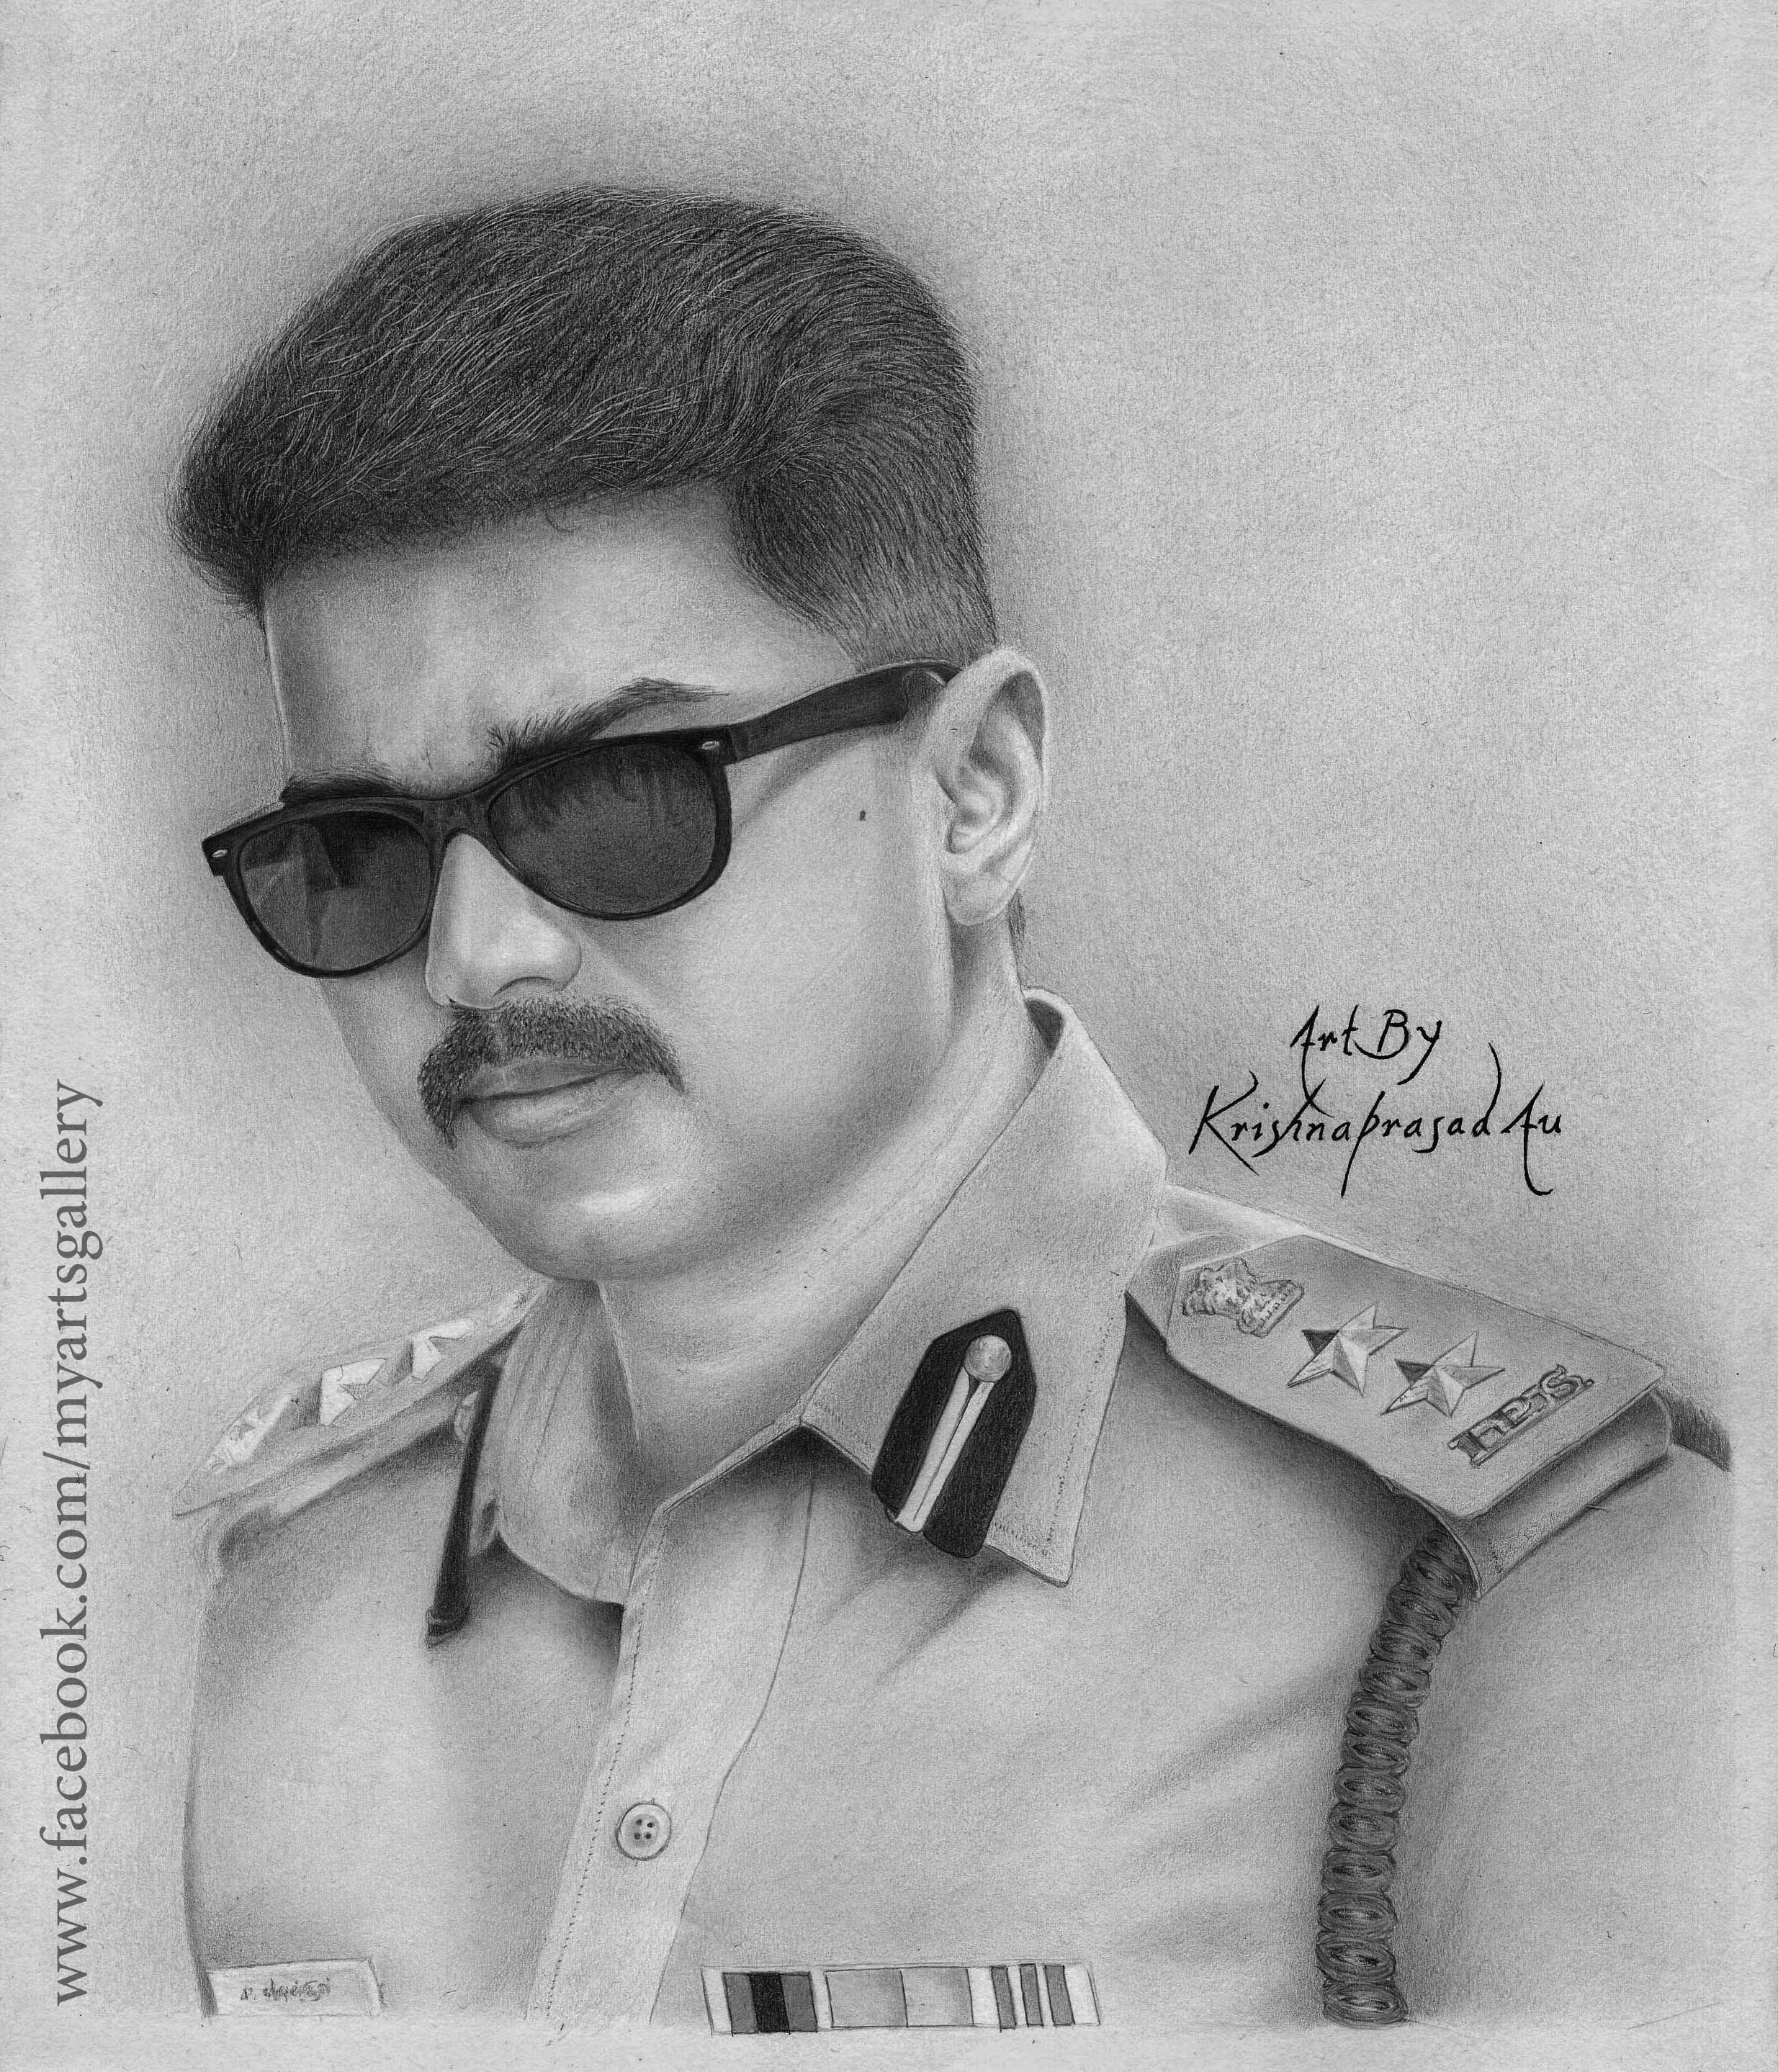 My art work portrait of actor vijay pencils faber castell 8b6b2b camlin h10b mechanical pencil size a4